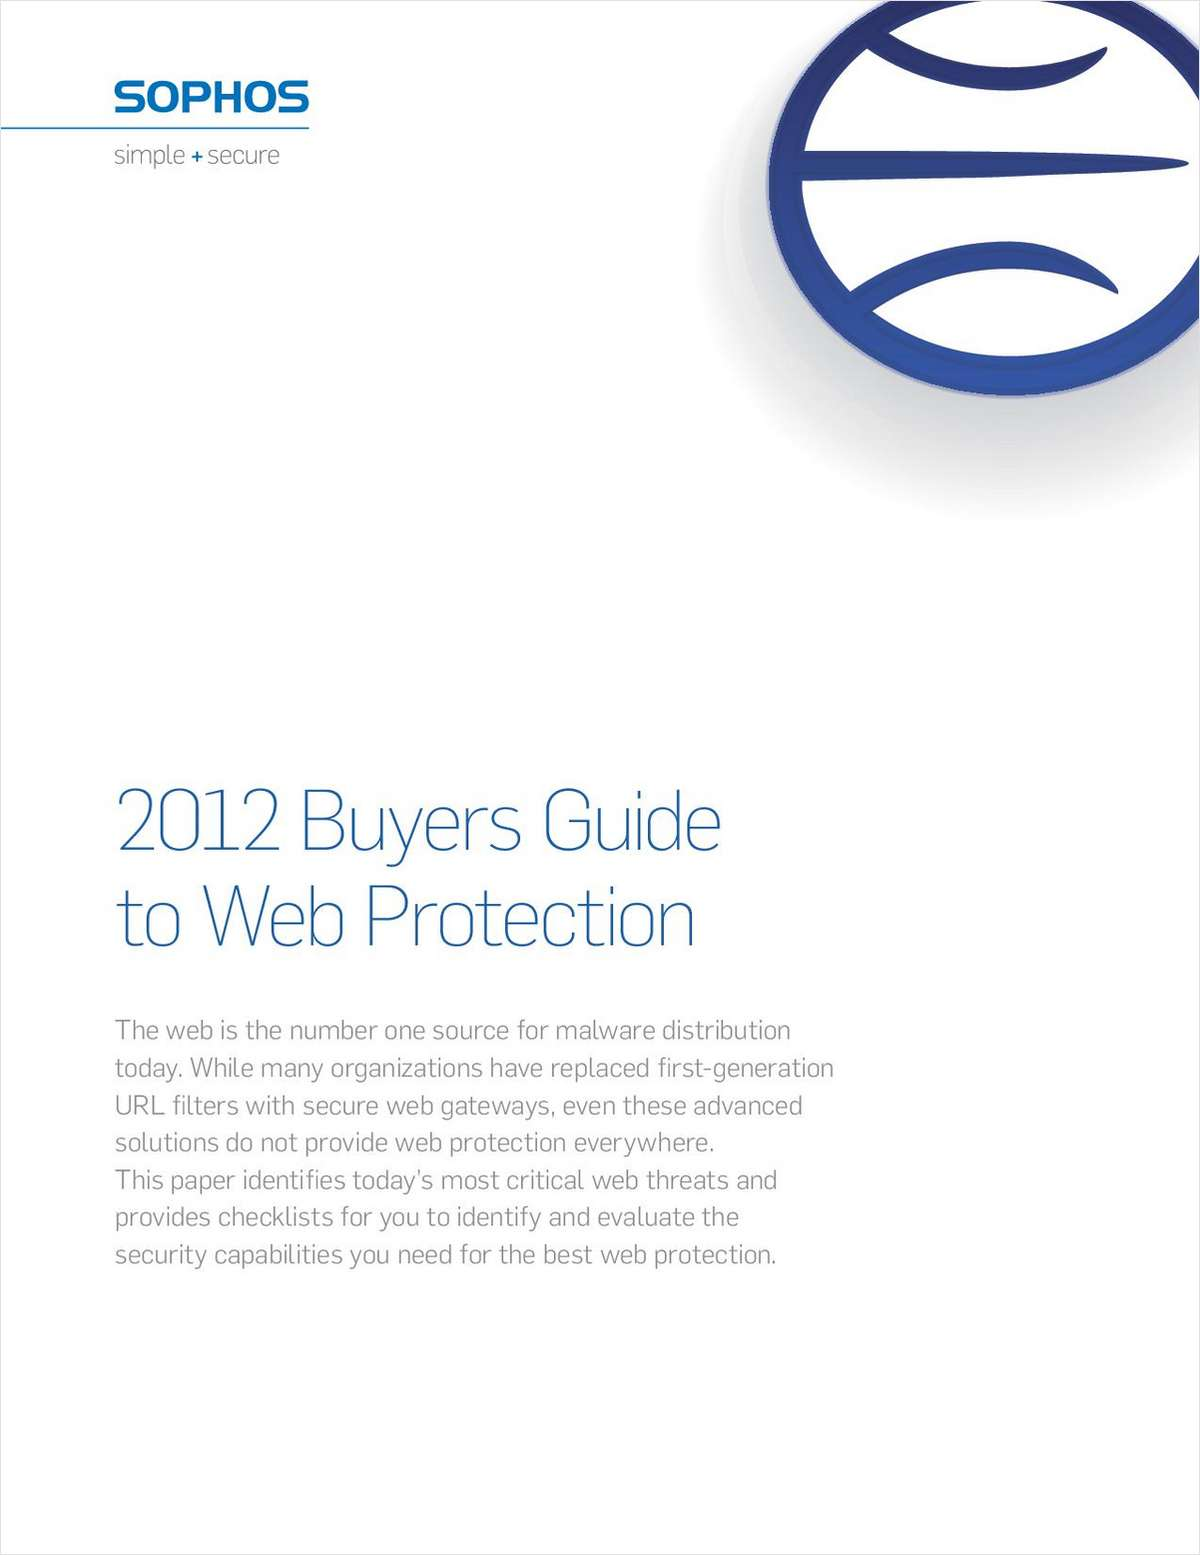 2012 Buyers Guide to Web Protection